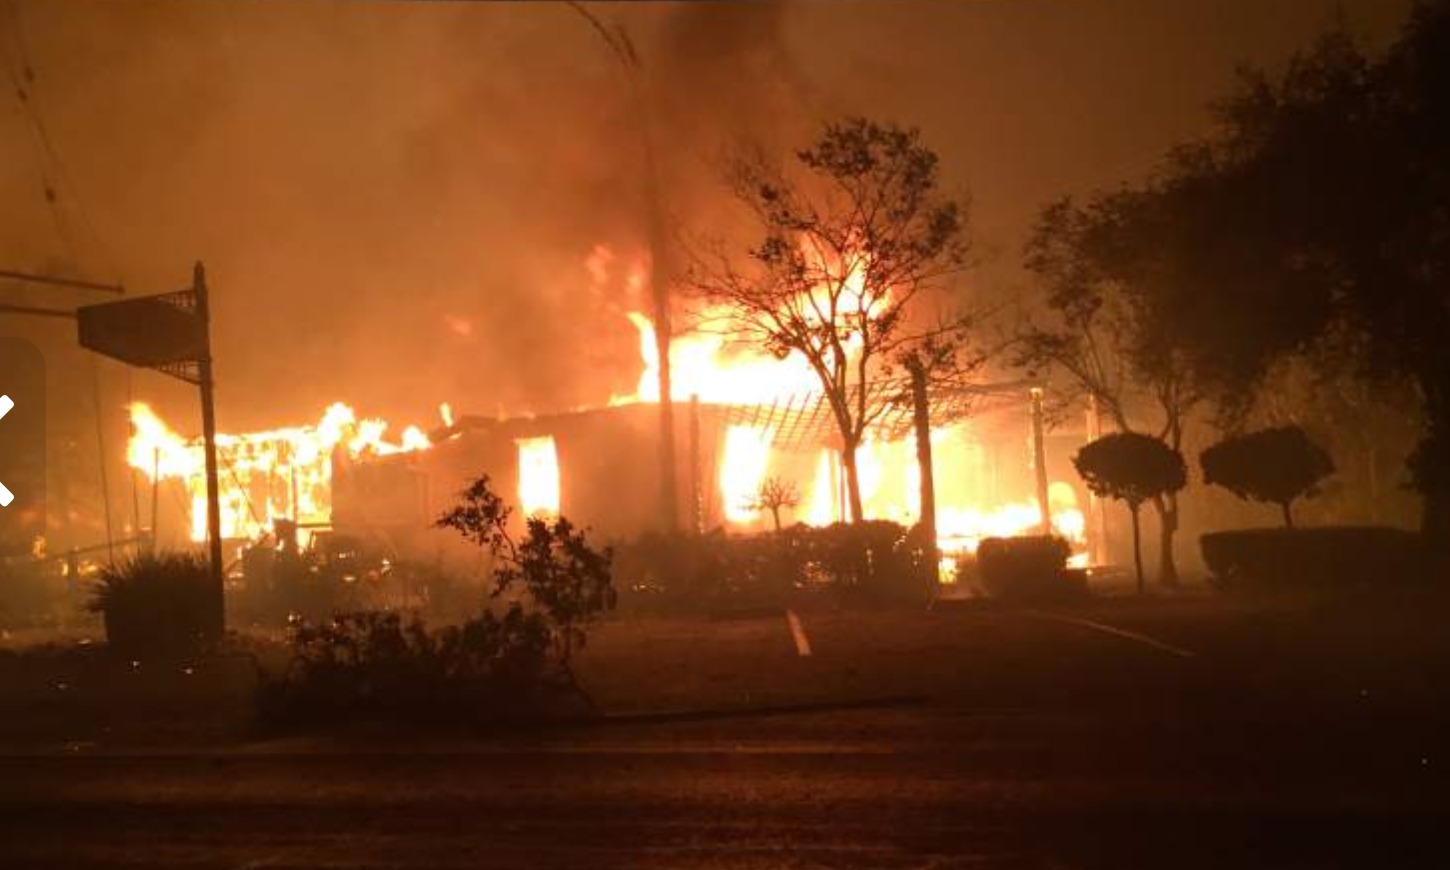 My Heart Goes Out To So Many Affected by the Fires